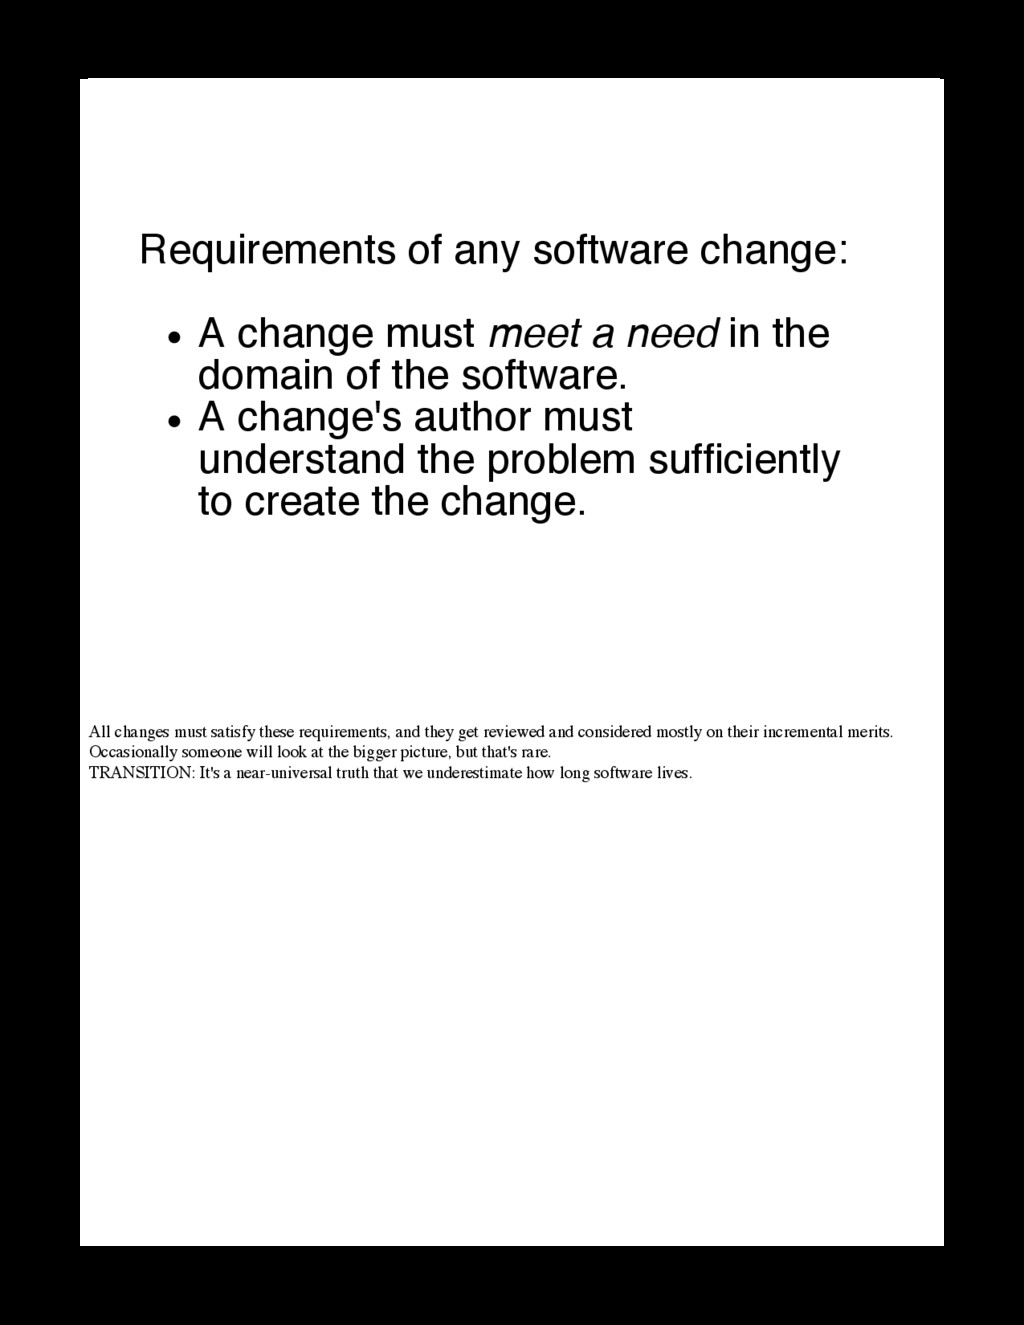 All changes must satisfy these requirements, an...